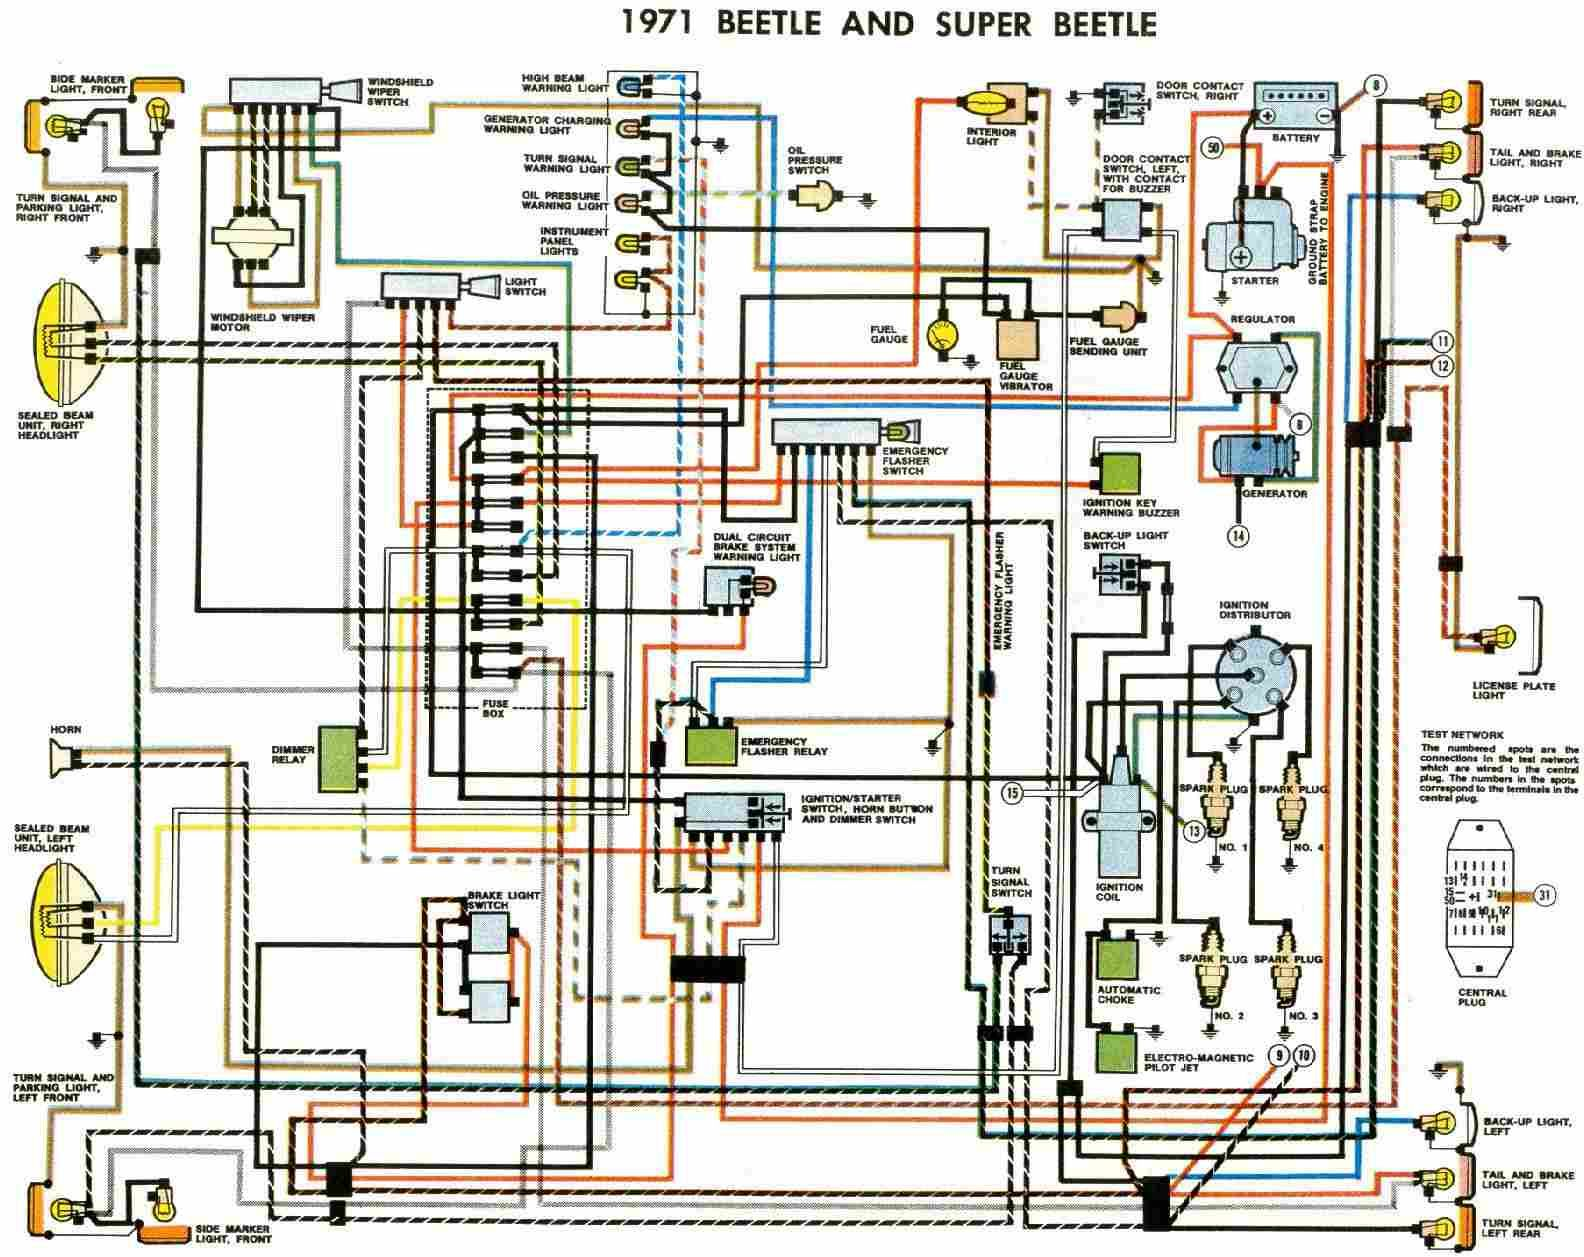 auto wiring diagram 1971 vw beetle and super beetle byocar auto wiring diagram 1971 vw beetle and super beetle